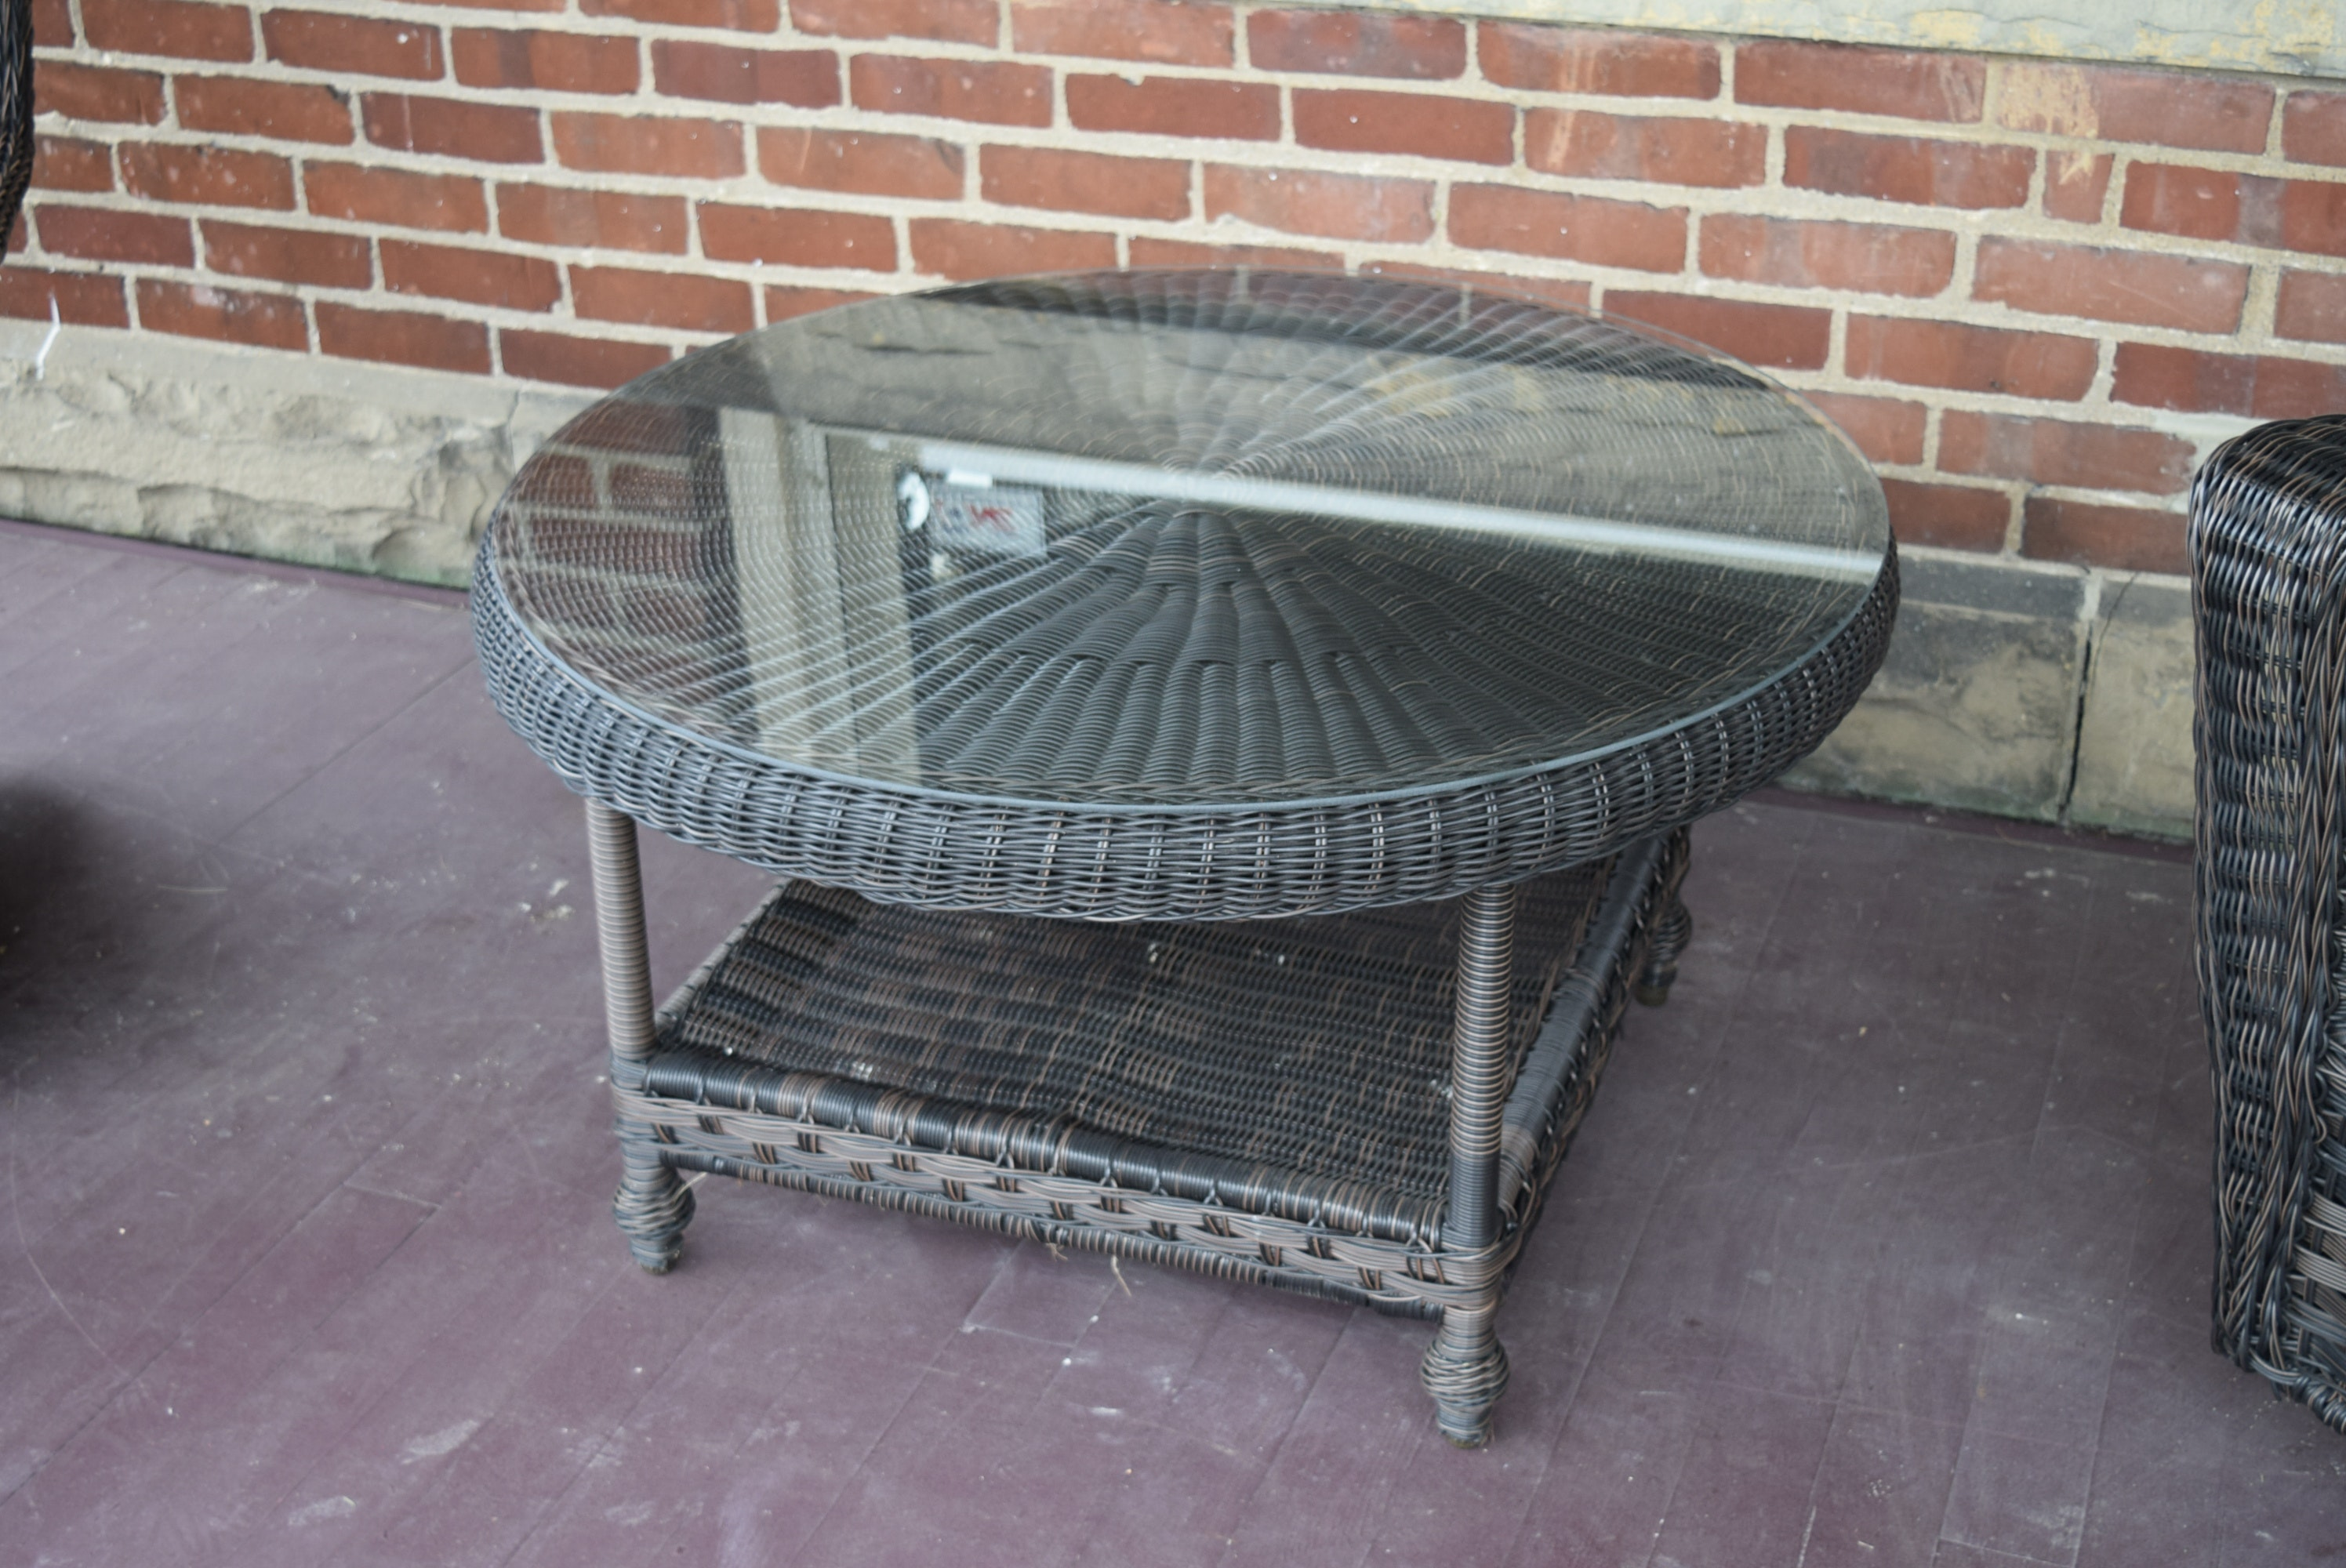 georgetown chatrooms Description: the georgetown collection features a roomy wide arm design in indoor/outdoor wicker it offers premium deep seating with comfortable, removable suspension seating and a durable resin weave over a&nbsppremium&nbspgrade steel frame.